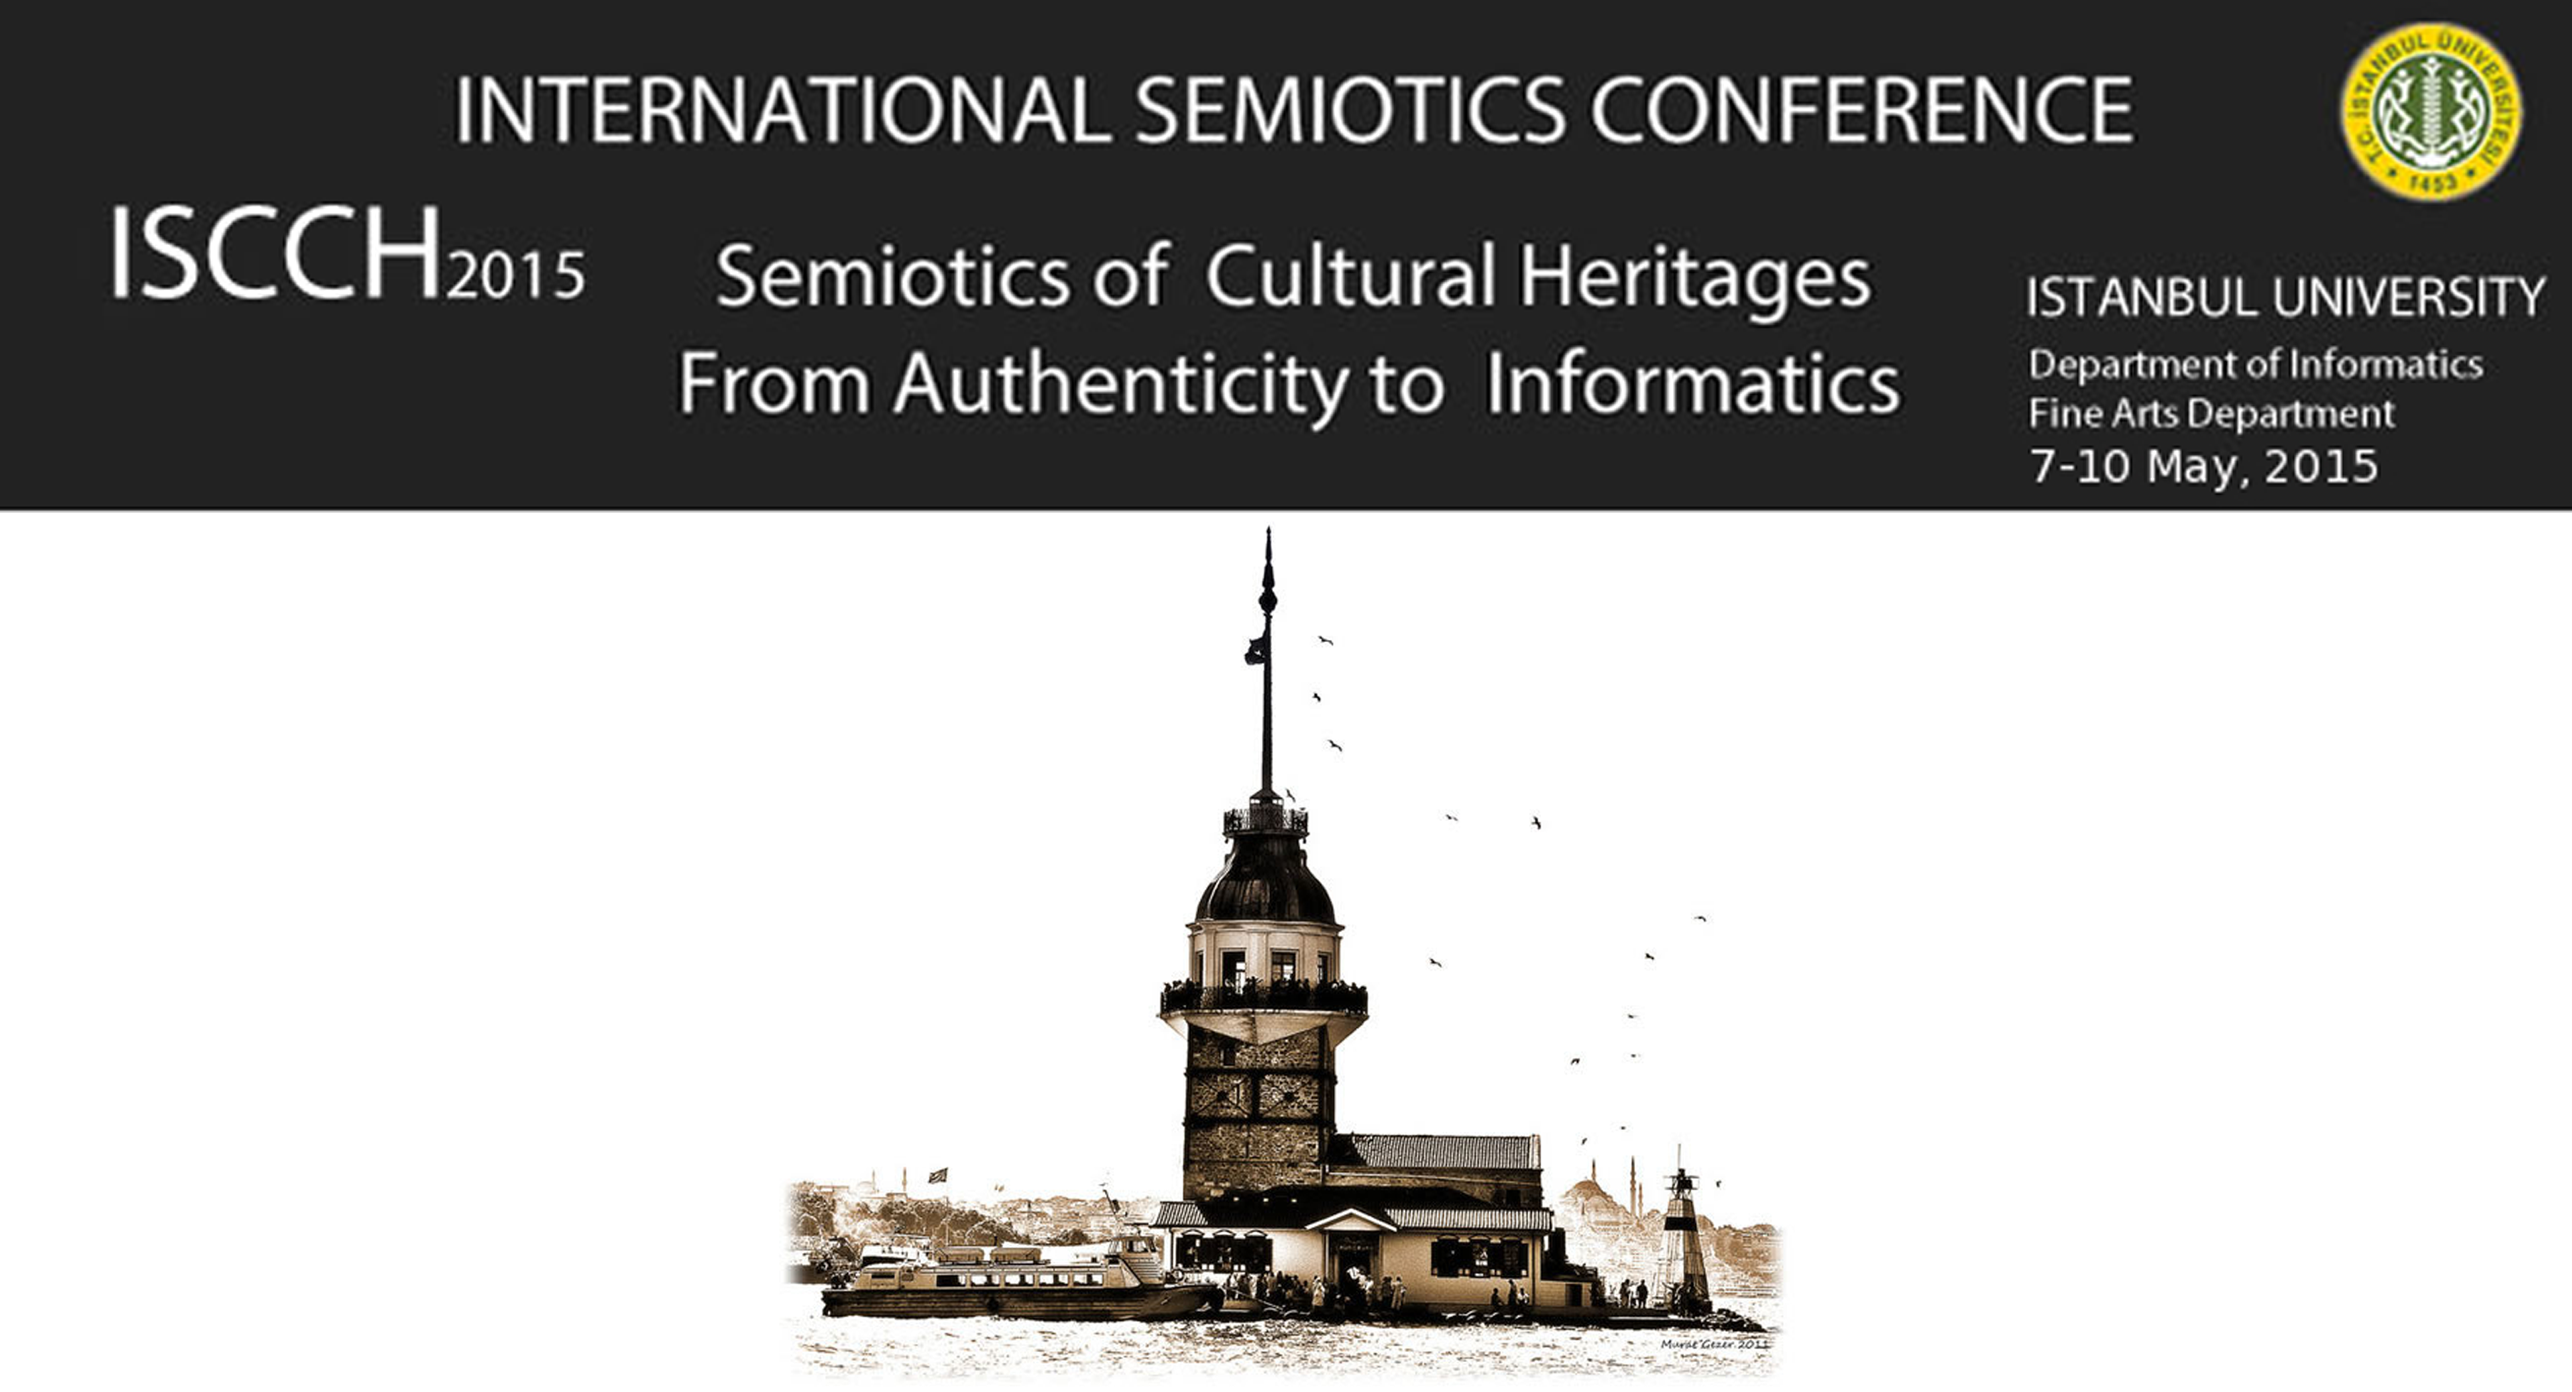 cfp semiotics of cultural heritages from authenticity to cfp semiotics of cultural heritages from authenticity to informatics 7 10 2015 istanbul university extended deadline